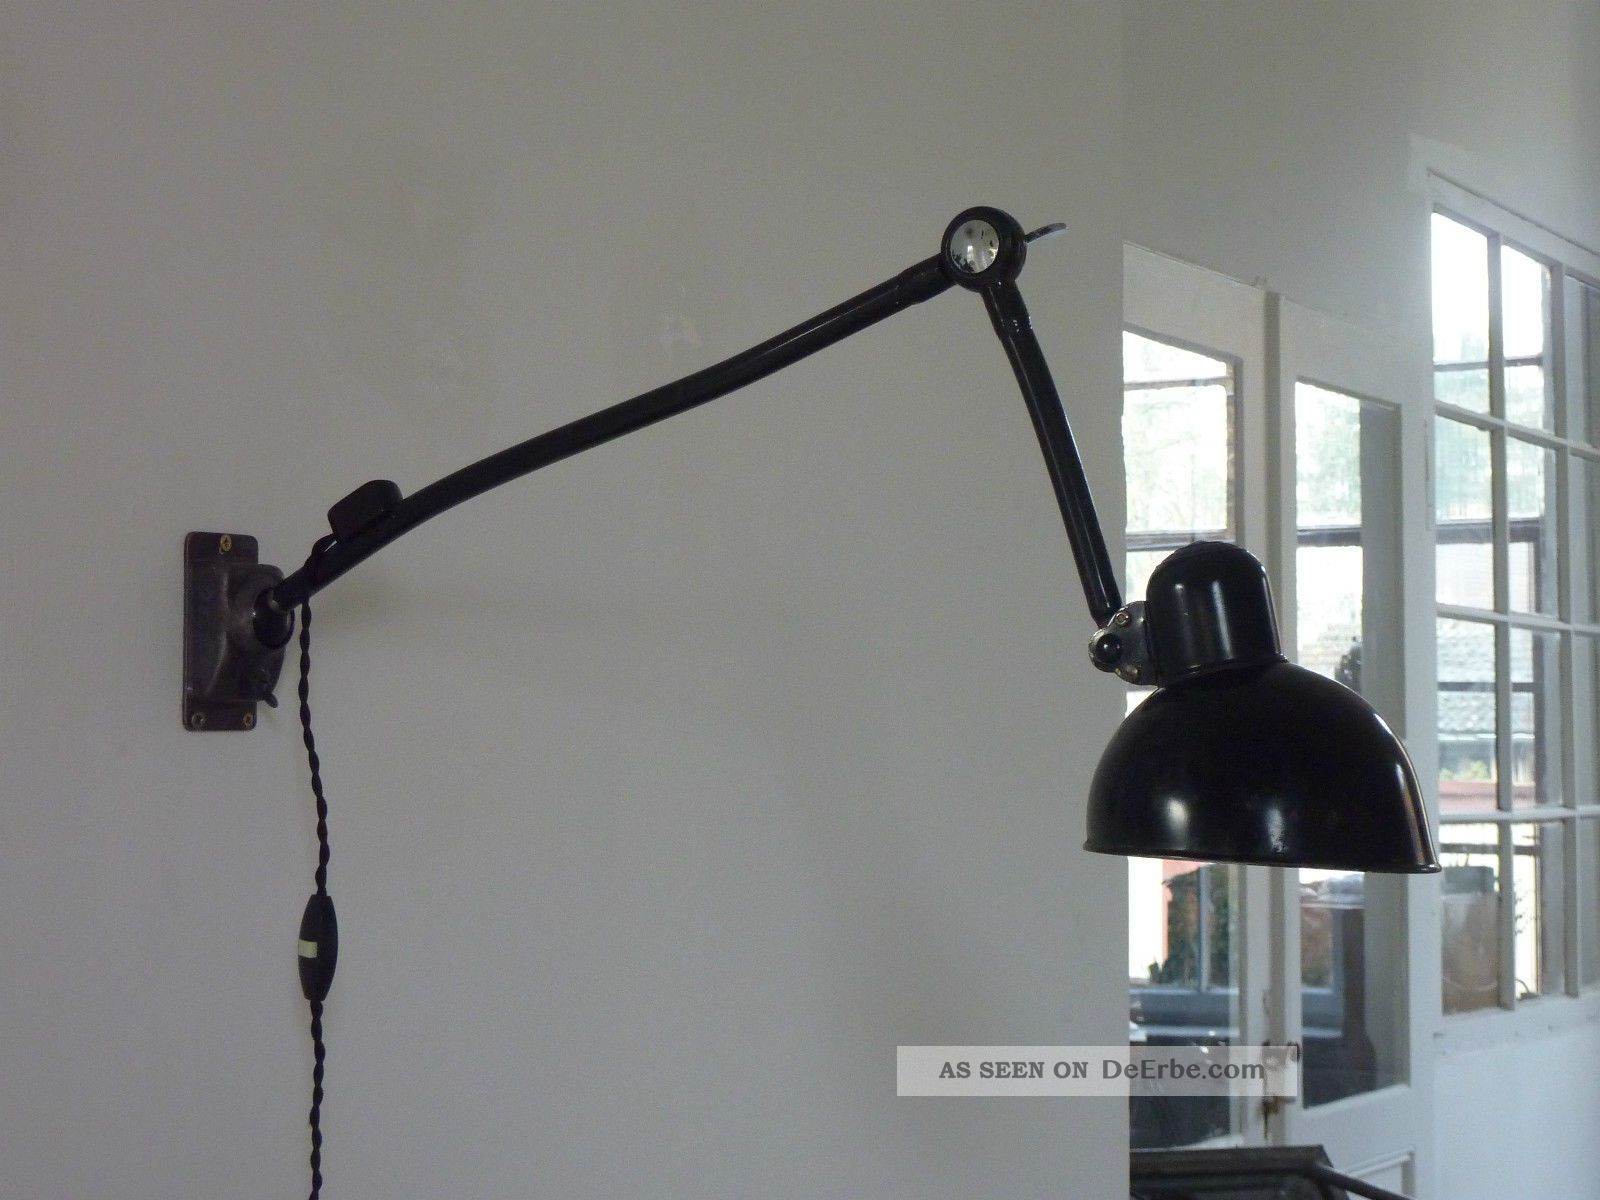 kaiser idell wandlampe vintage industrie design werkstattlampe lampe. Black Bedroom Furniture Sets. Home Design Ideas